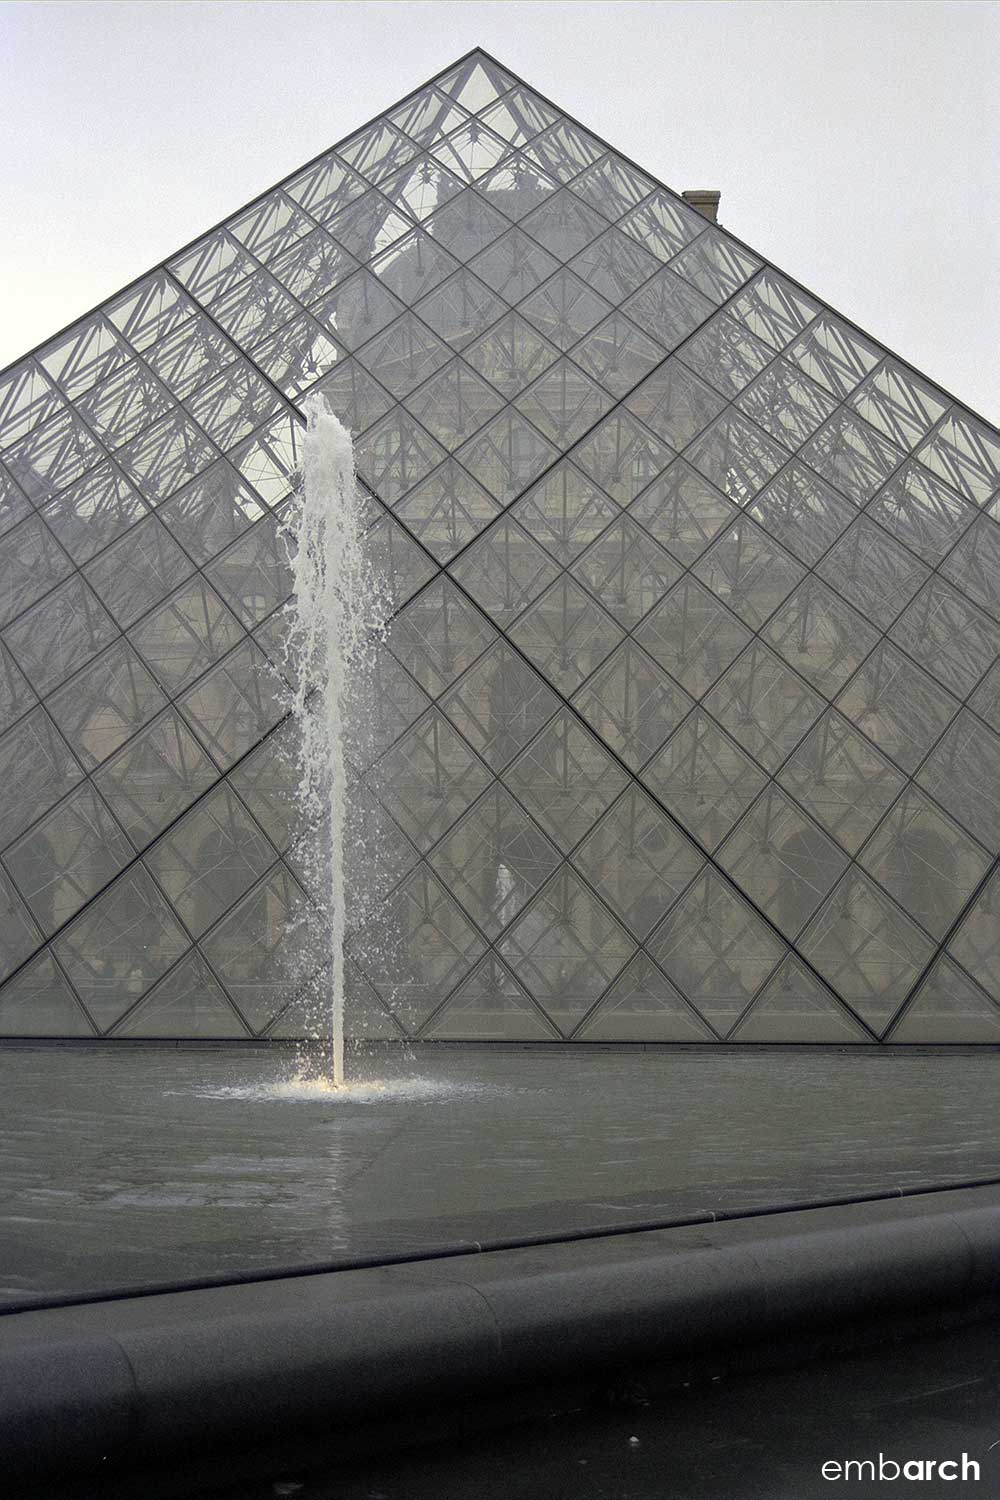 Louvre - exterior courtyard pyramid detail